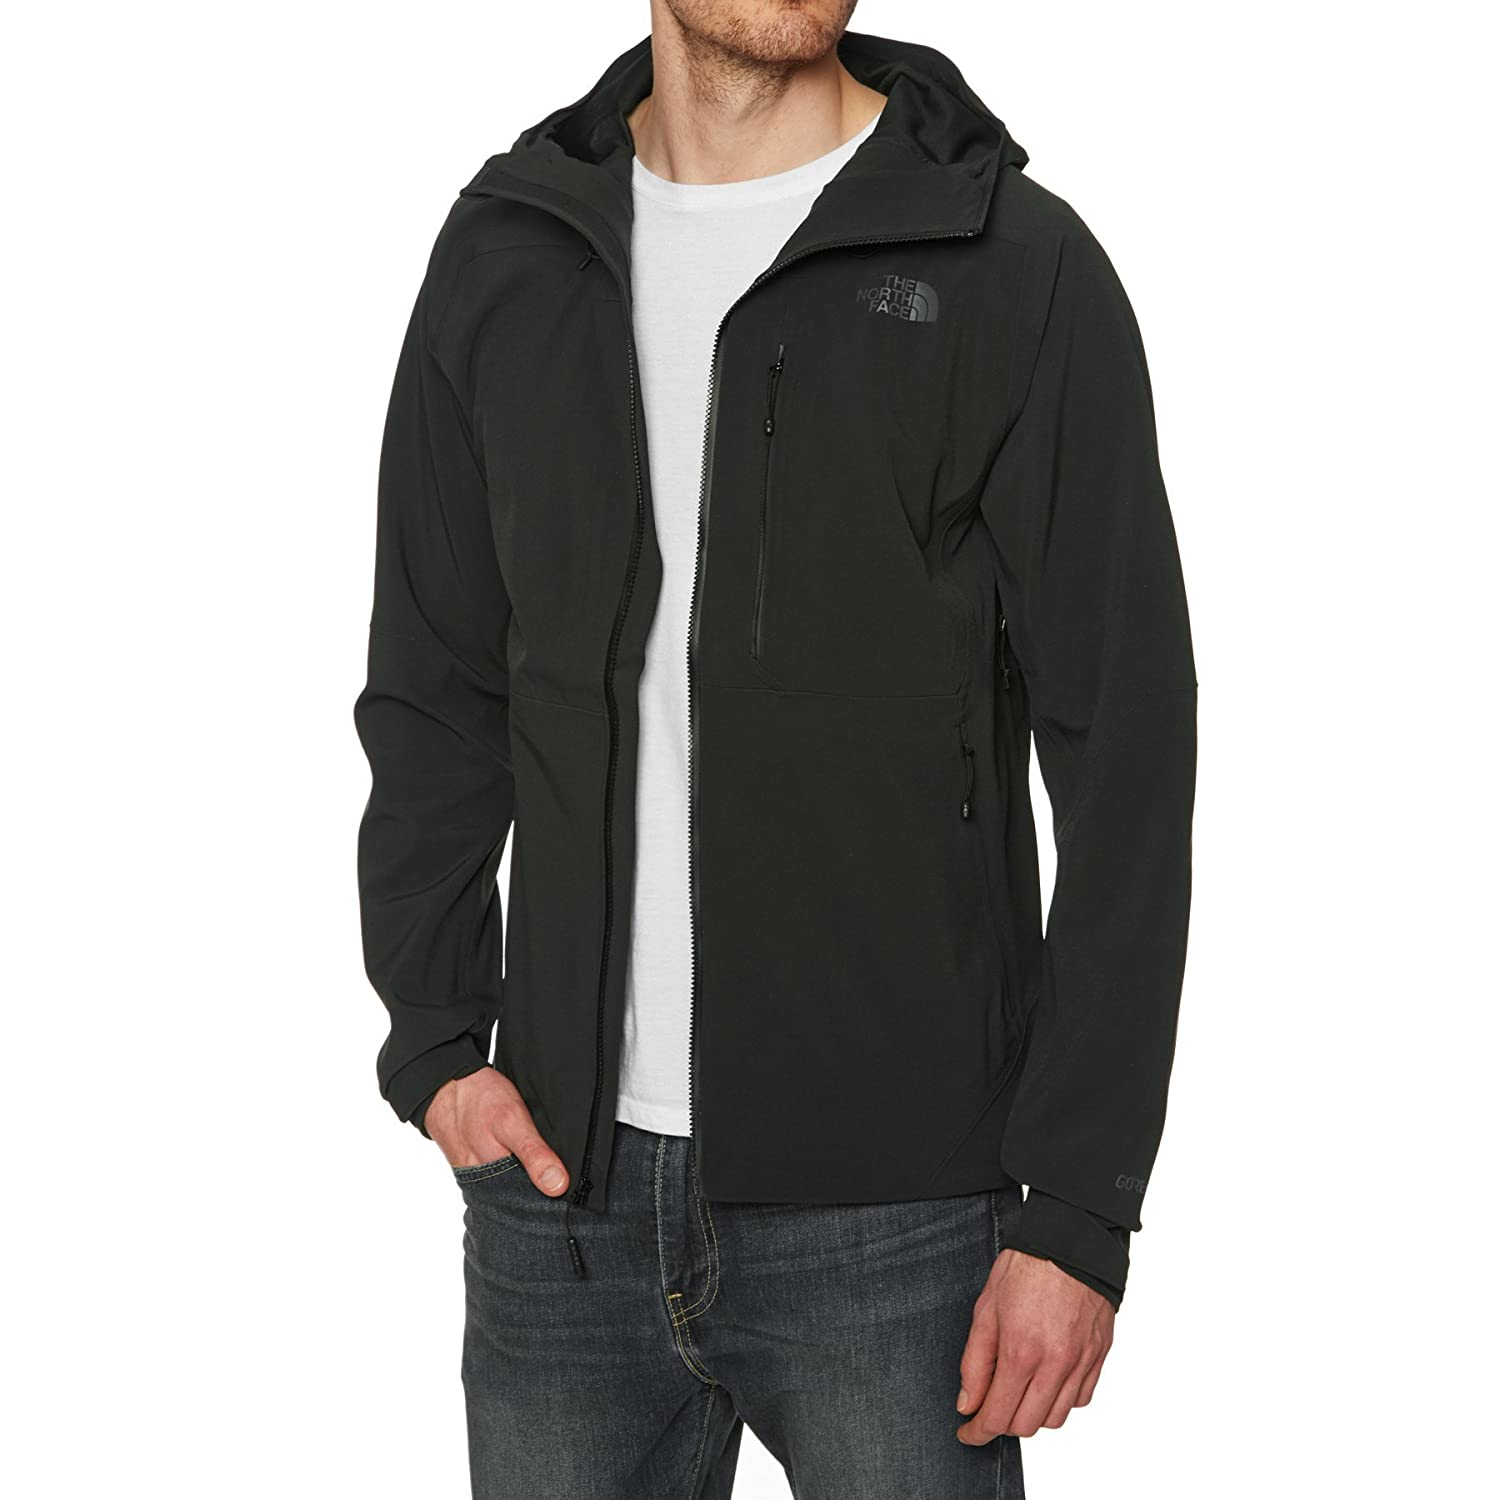 THE NORTH FACE Apex Flex GTX 2.0 Jacket Men - Regenjacke B079JLN72L Regenjacken & -mntel Leitende Mode